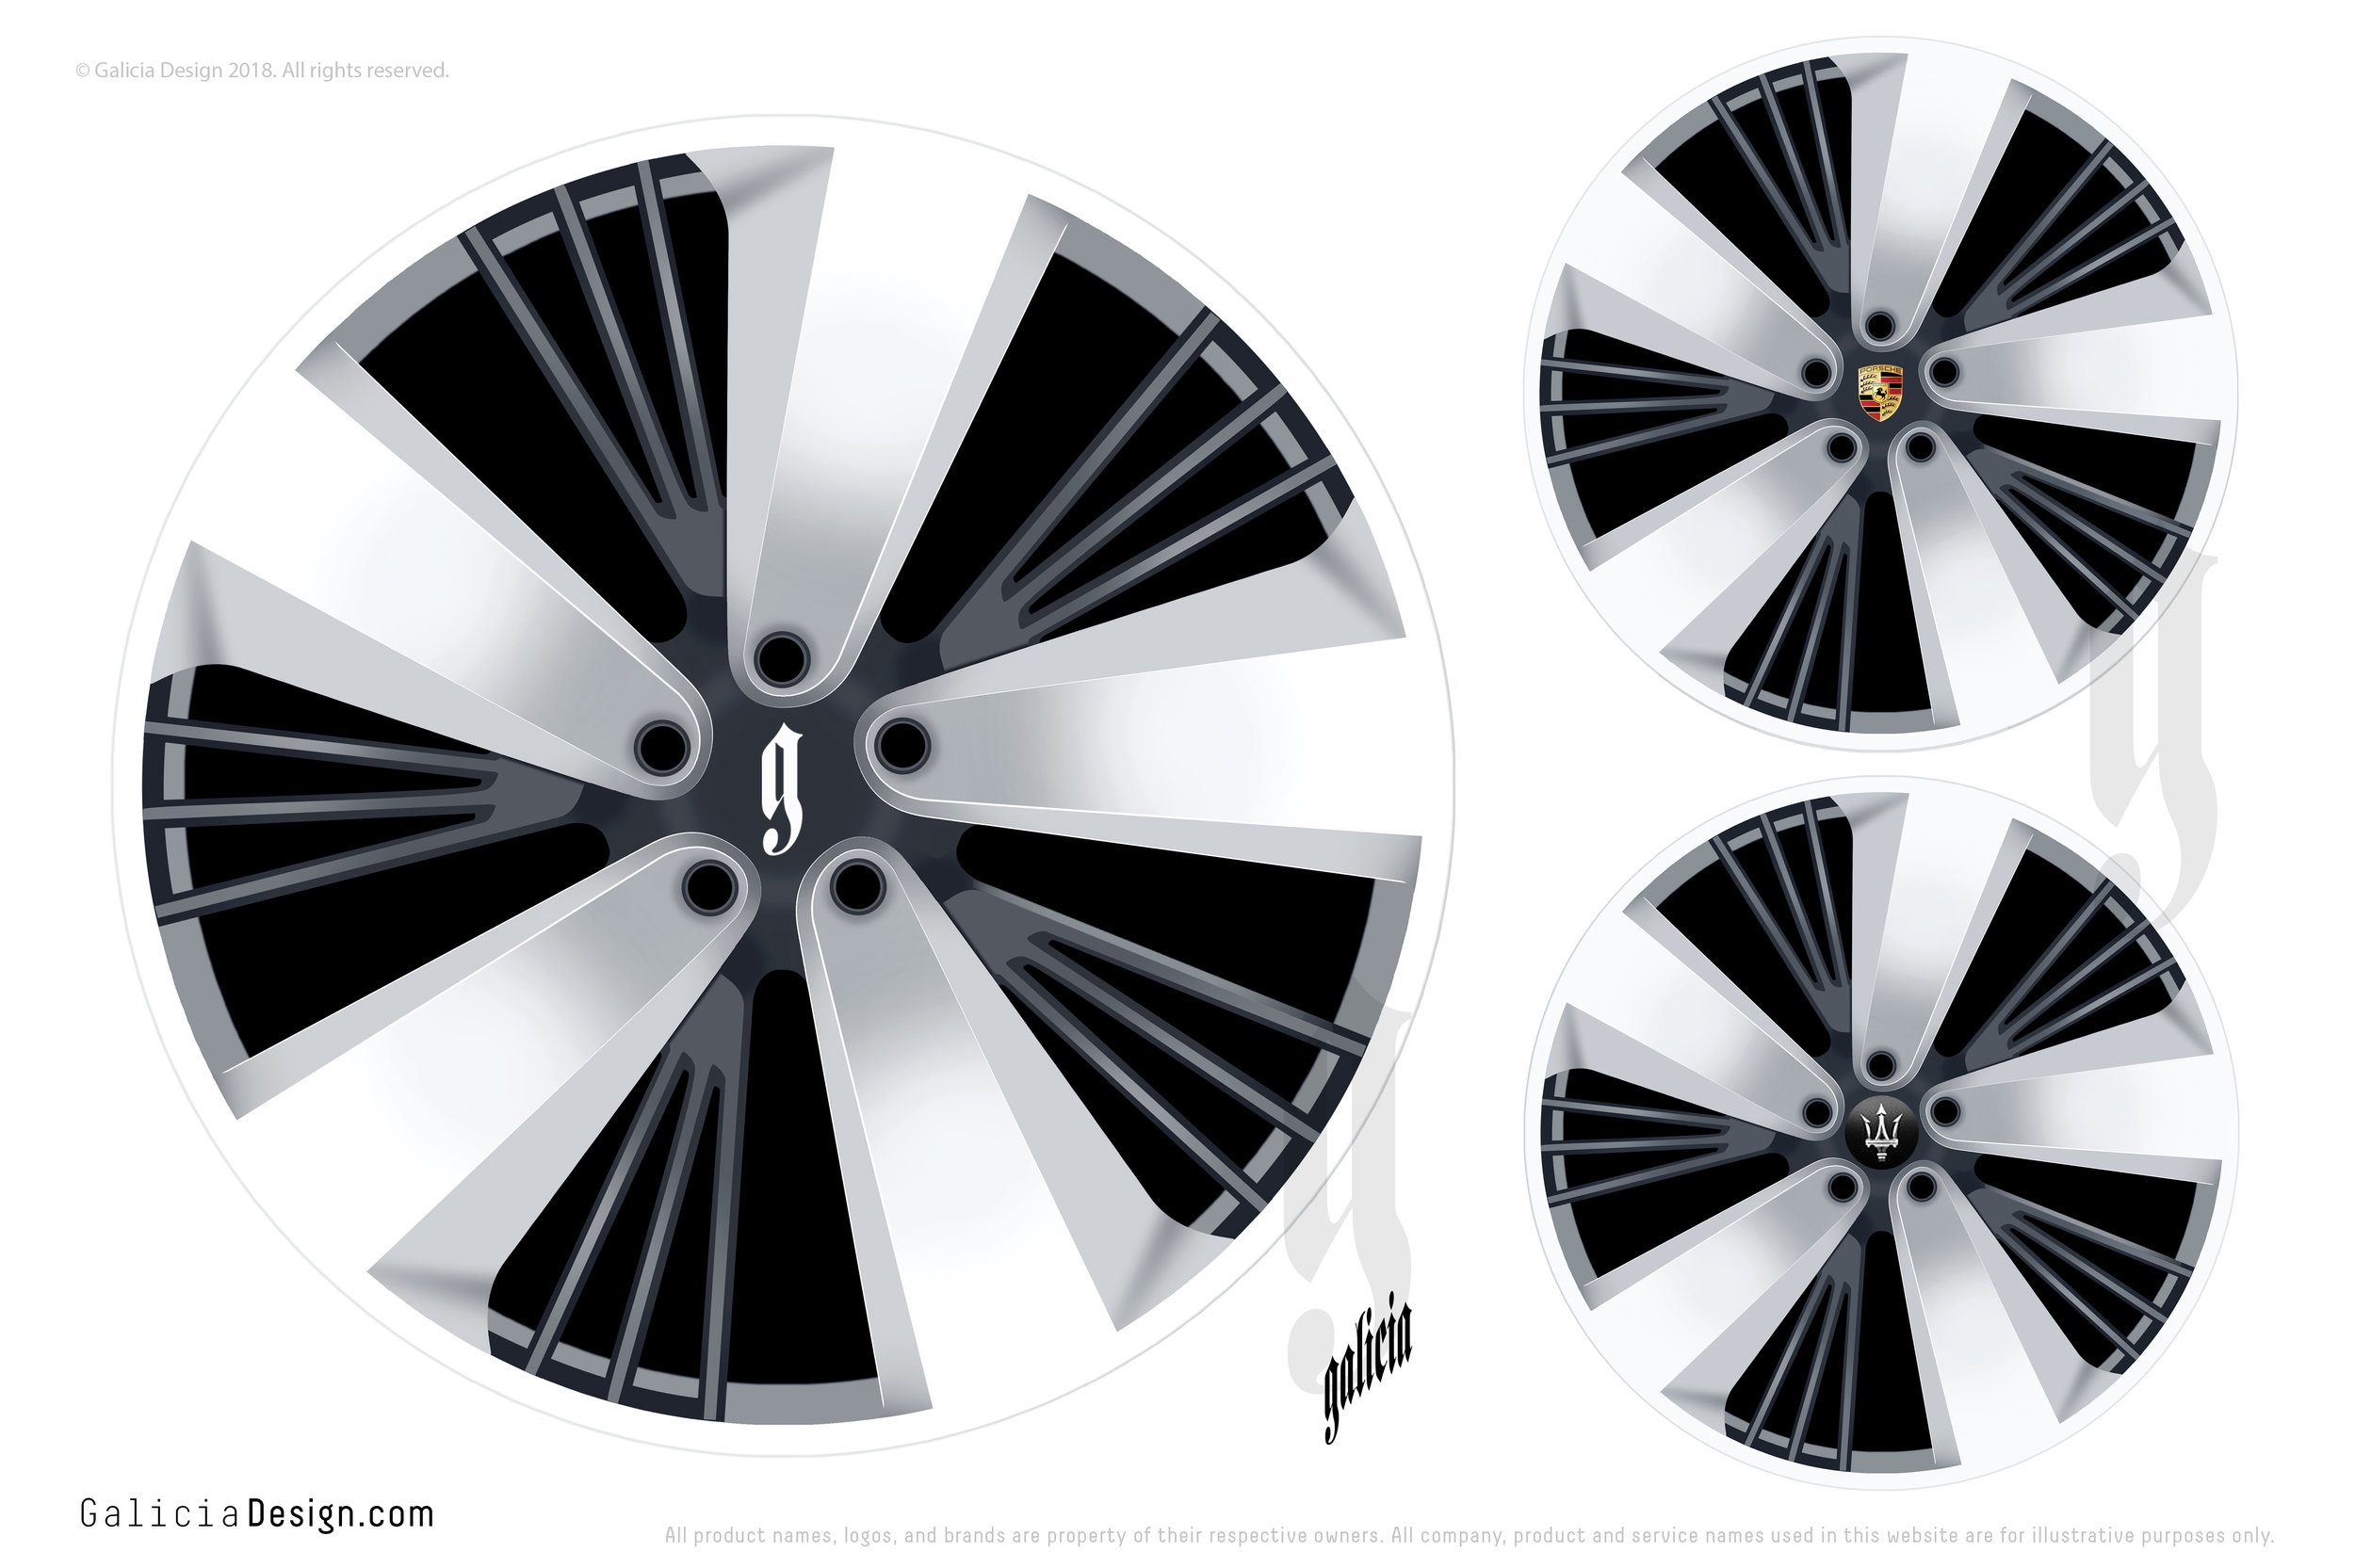 5 spoke wheel - galiciadesign_com.jpg